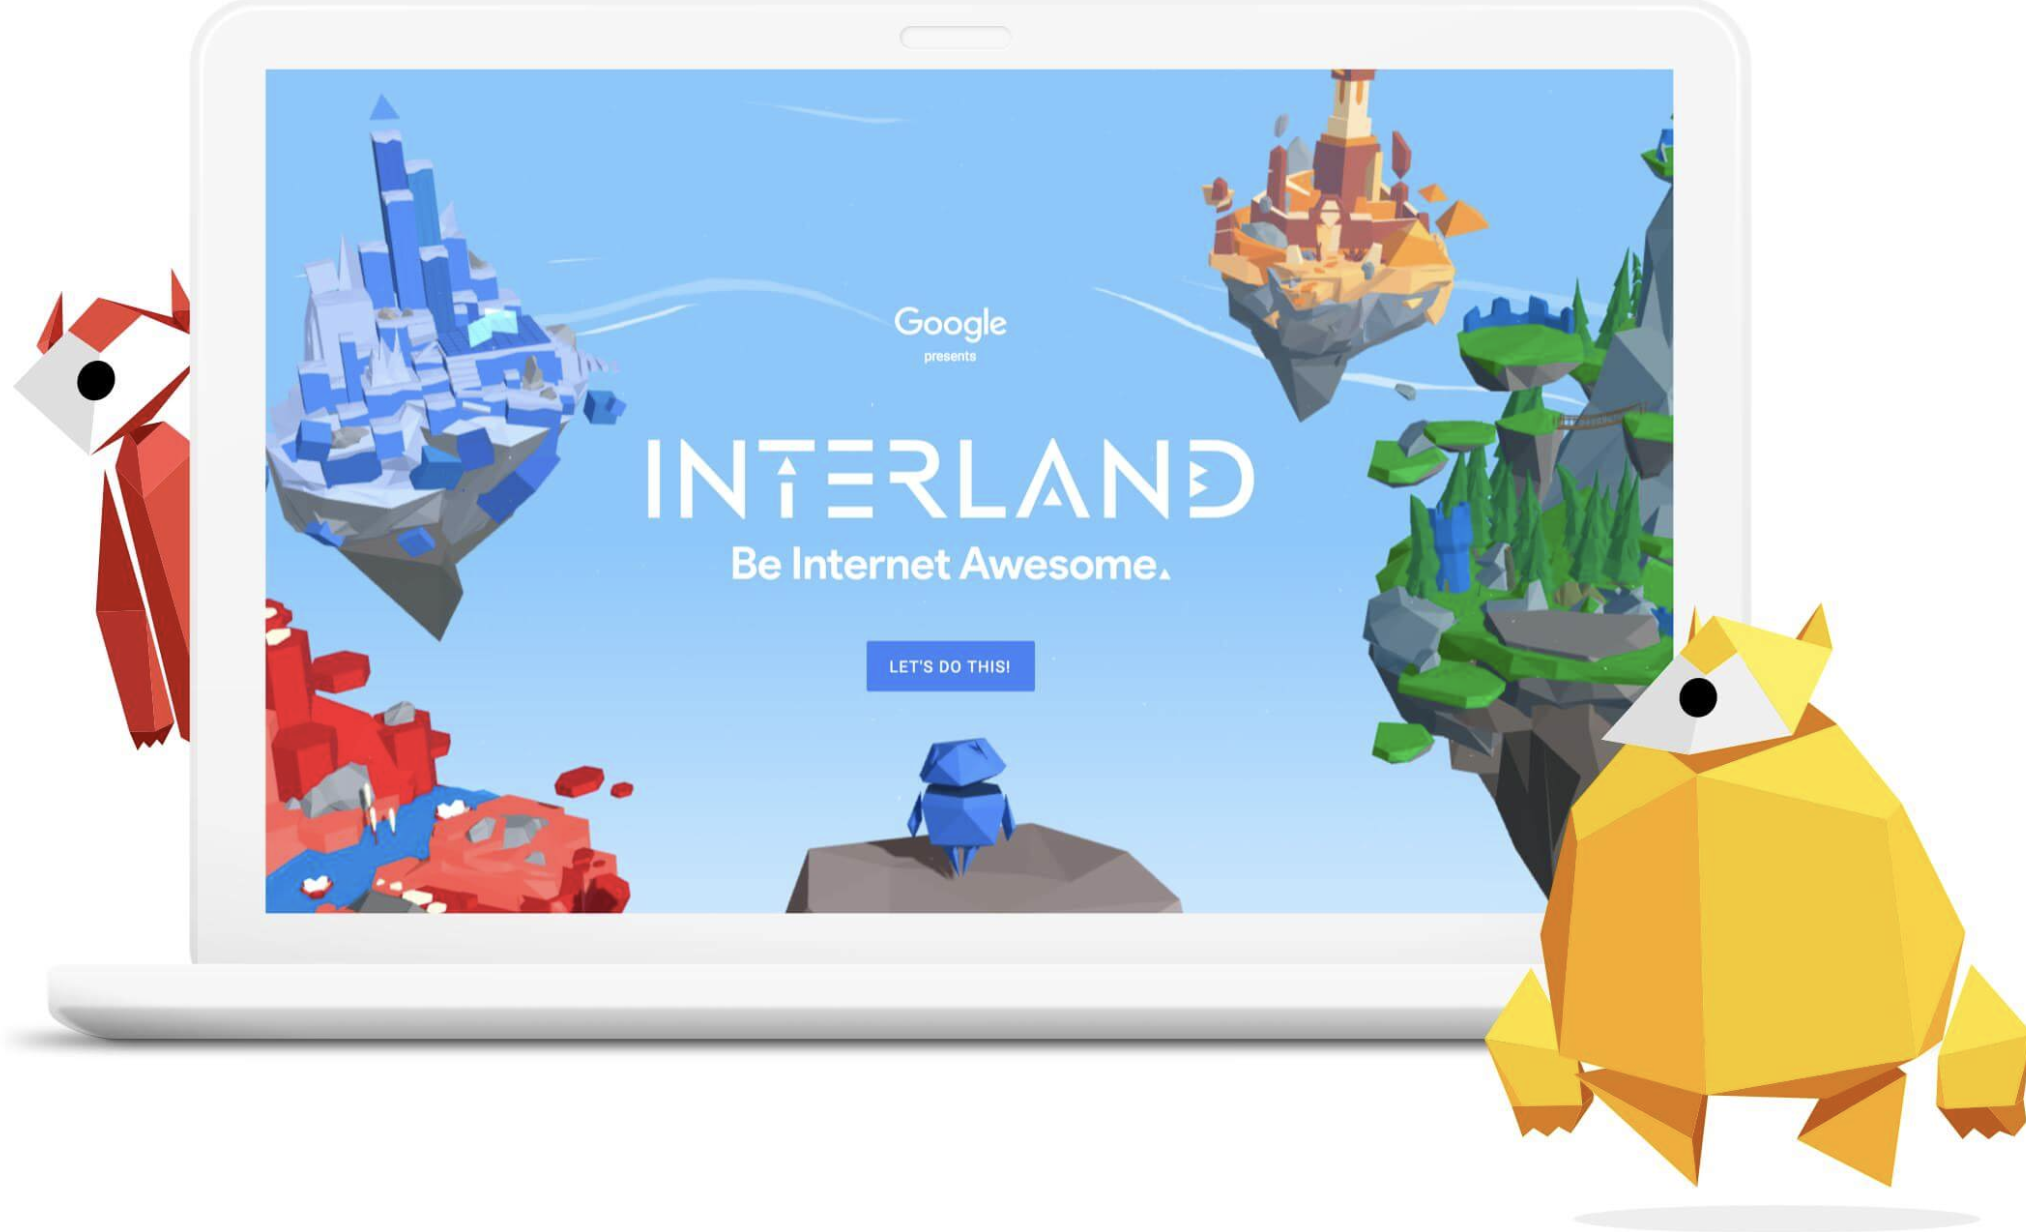 Be Internet Awesome is an adventure-packed online game called that focuses on digital safety and citizenship. Full story @ www.hipmamasplace.com. #BeInternetAwesome #ItsCoolToBeKind #Sponsored